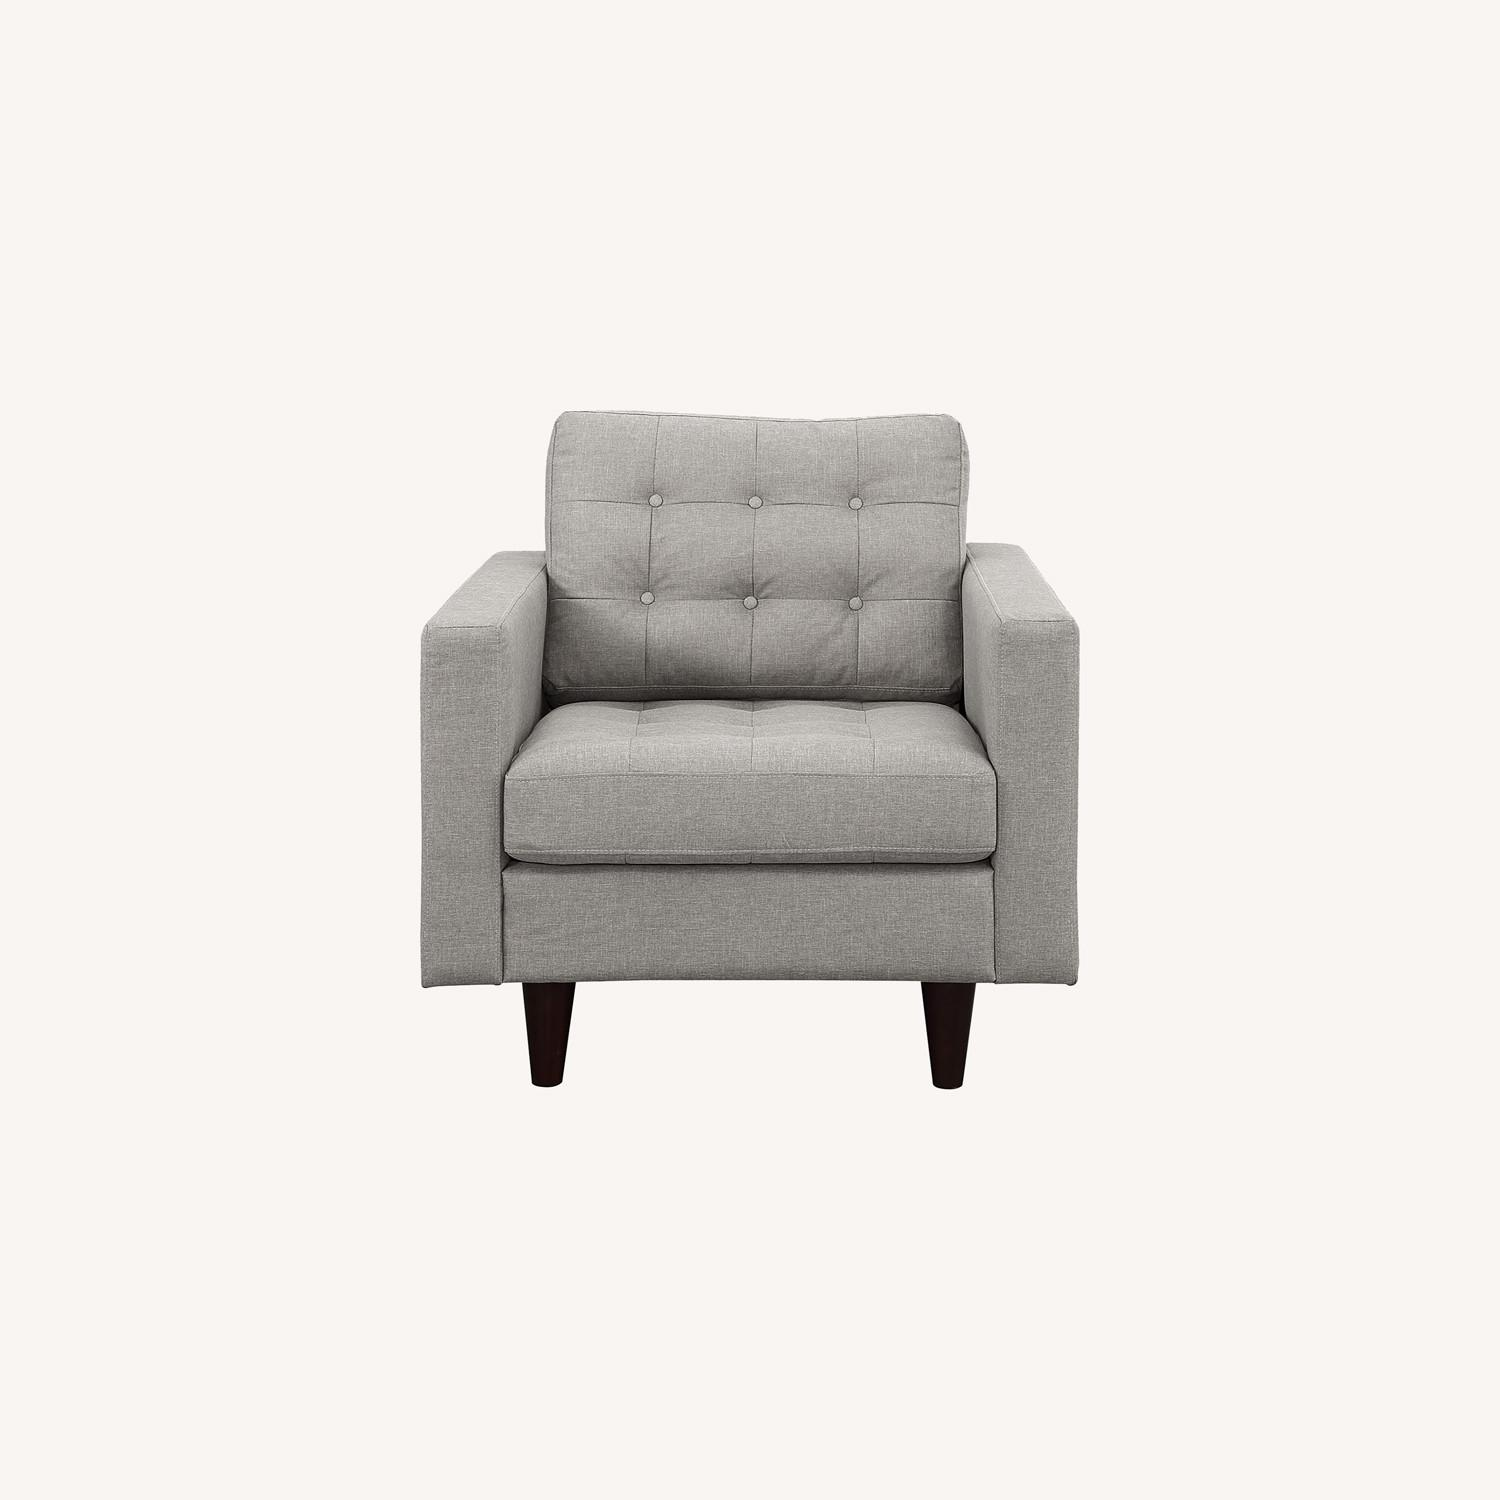 Armchair In Gray Upholstery W/ Tufted Buttons - image-6